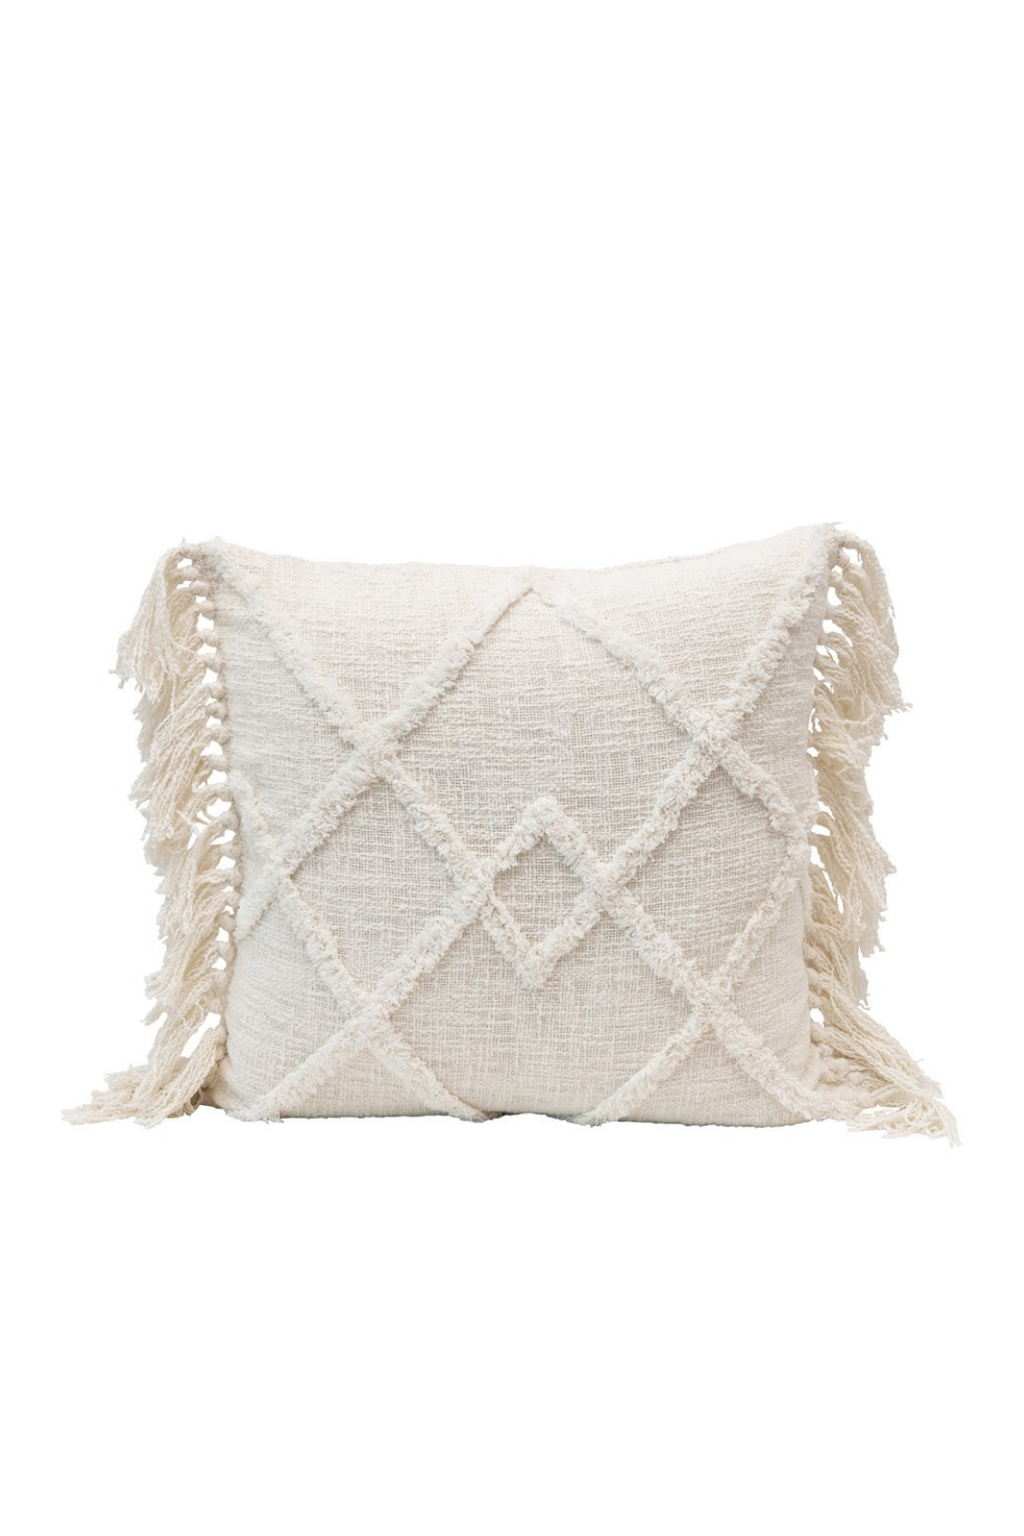 Creative Co-op Cream Tufted Diamond Cotton Pillow with Tassels DF4564